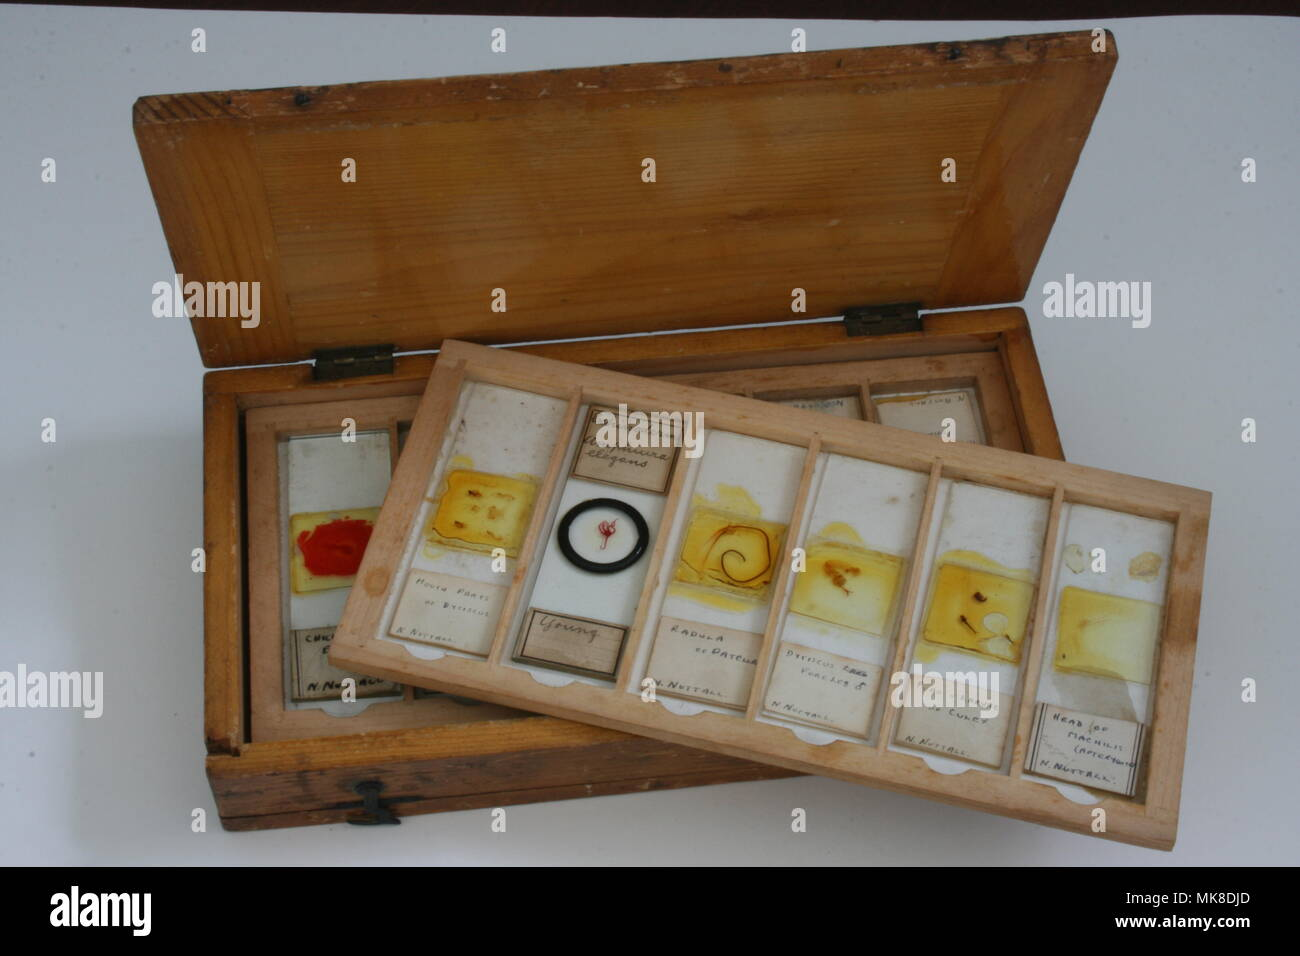 Microscope Slides in wooden tray and Box - Stock Image